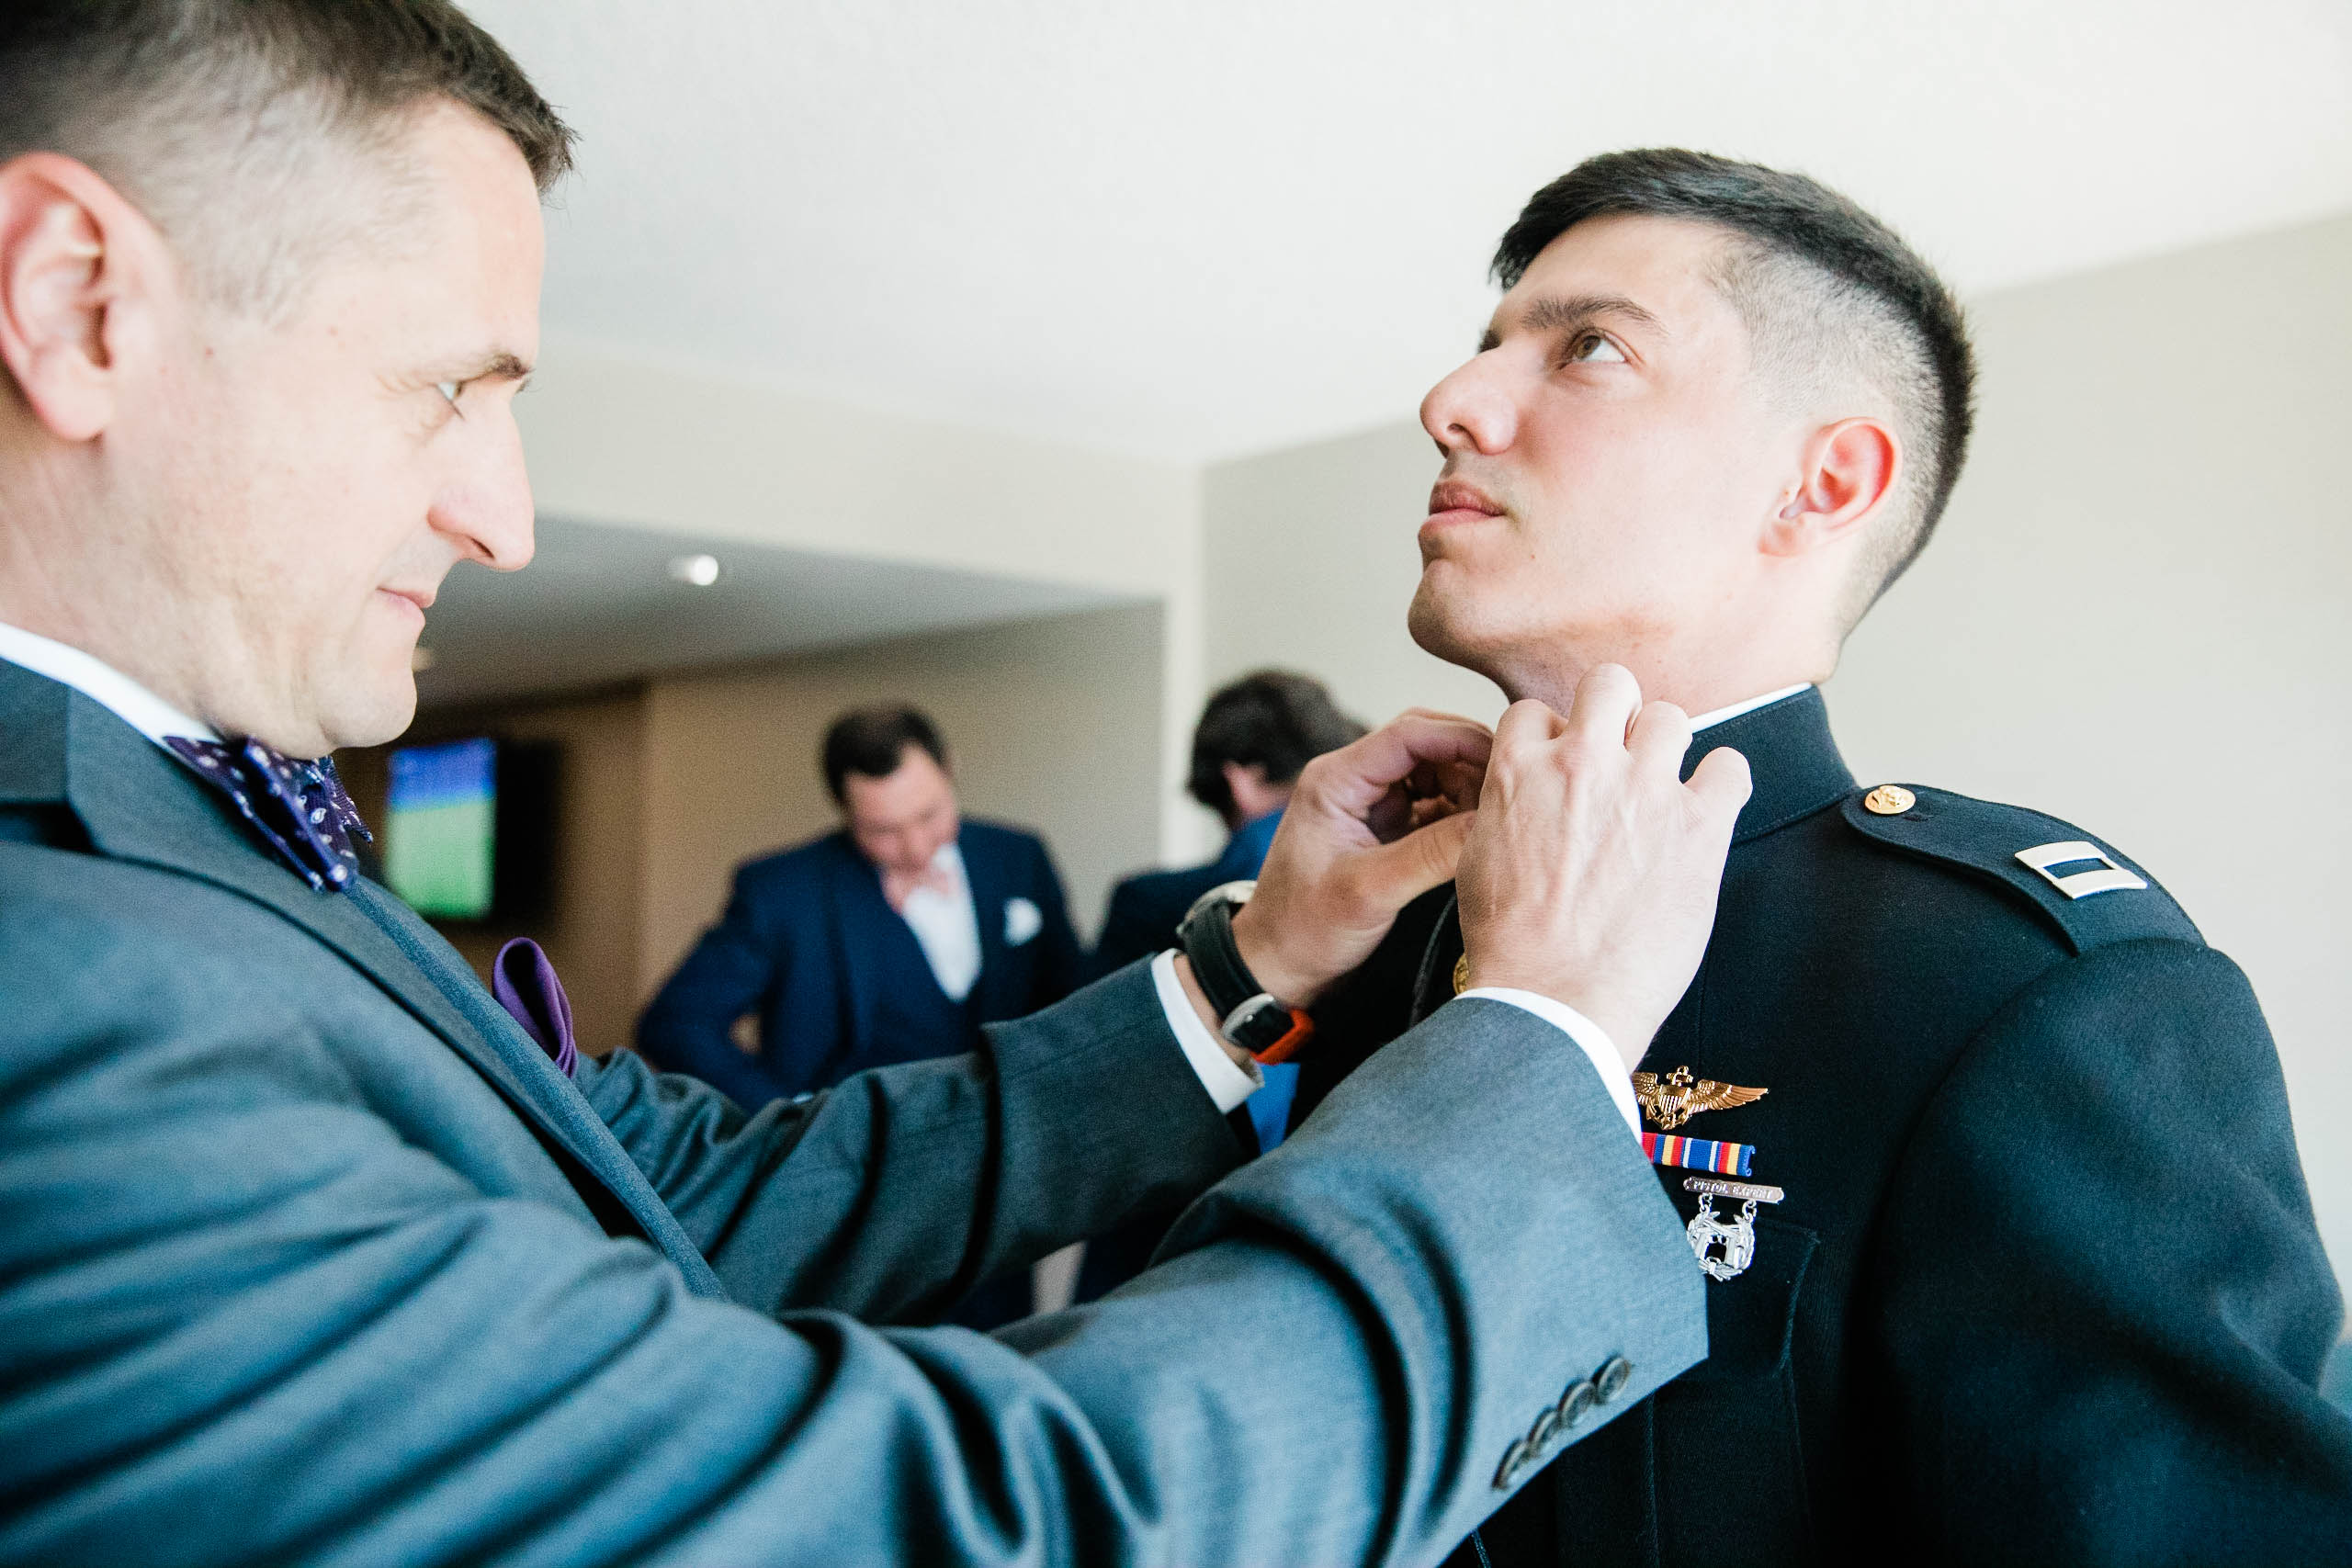 seattle wedding photographer captures groom putting on bowtie before marriage ceremony